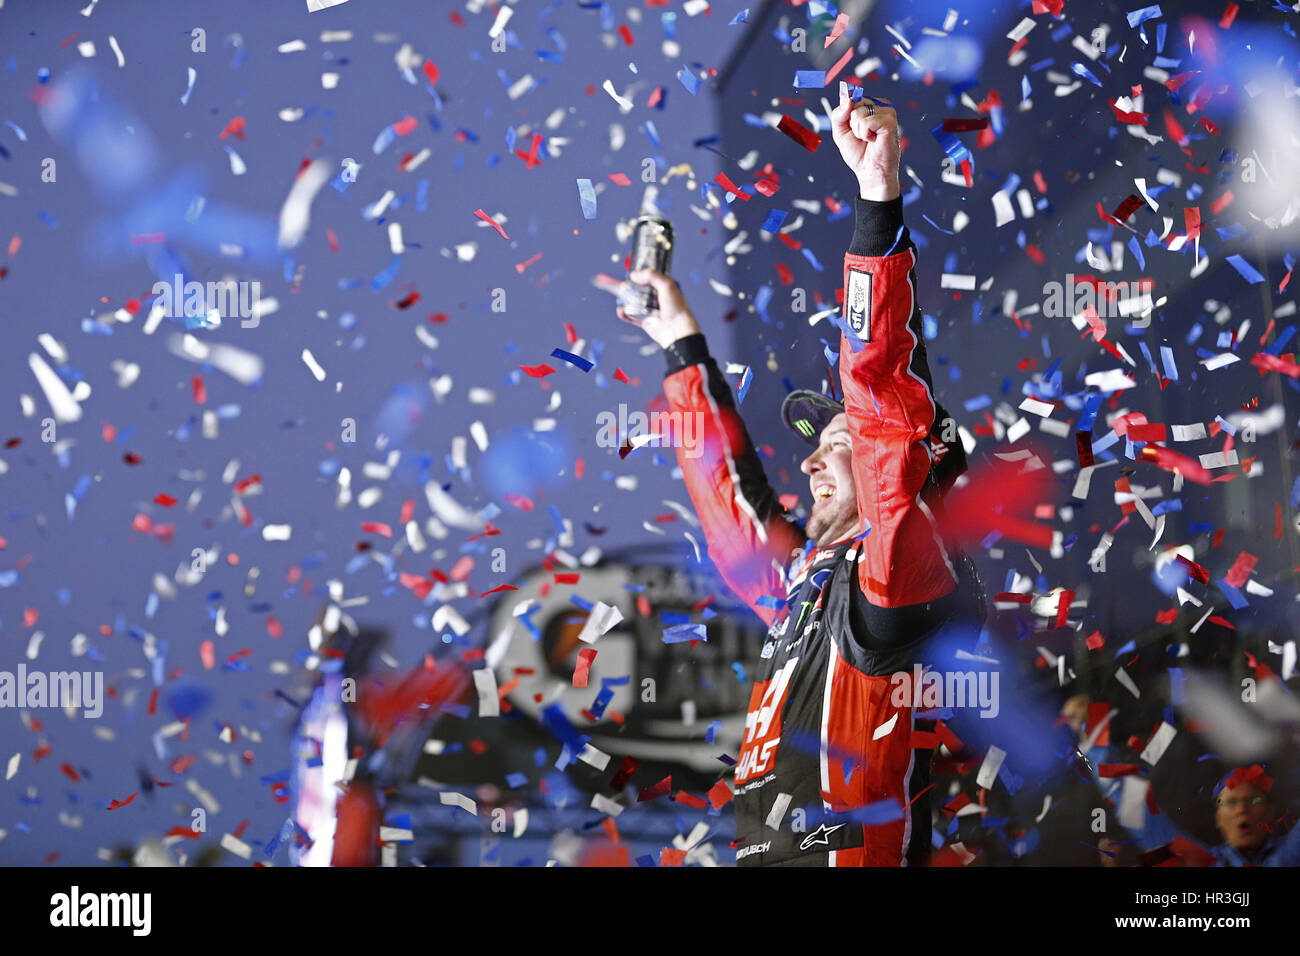 Daytona Beach, Floride, USA. Feb 26, 2017. 26 février 2017 - Daytona Beach, Floride, USA : Kurt Busch Photo Stock